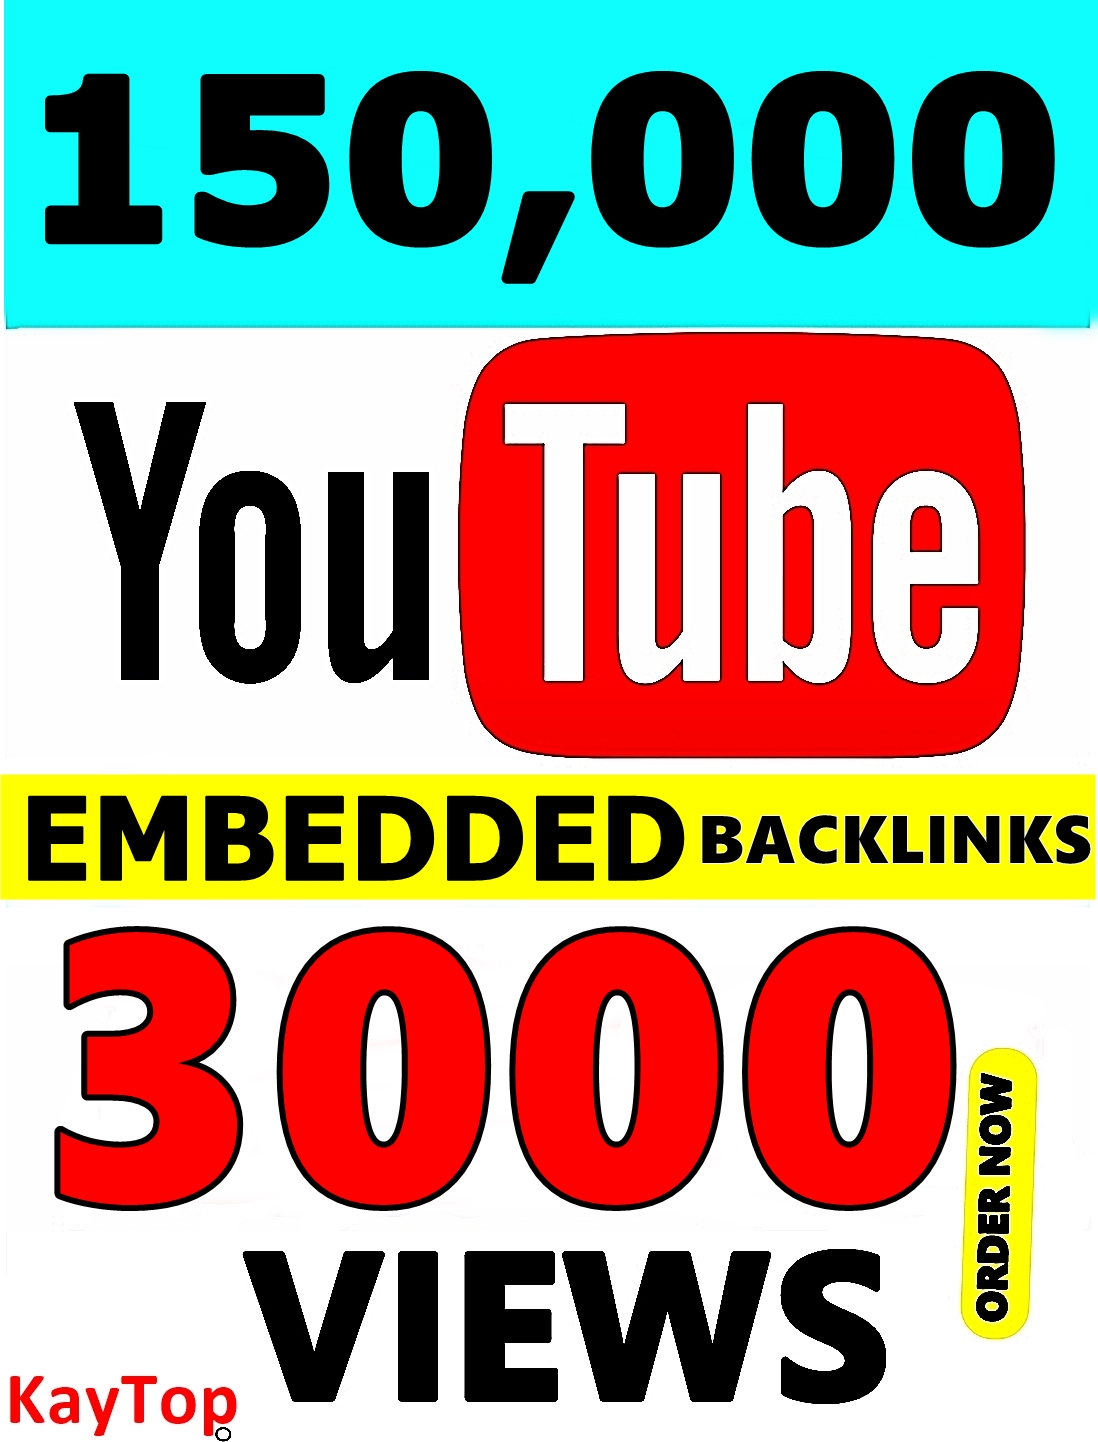 FAST Ranking EMBEDDED VERIFIED Backlinks For Ranking and Boost In Google Placement